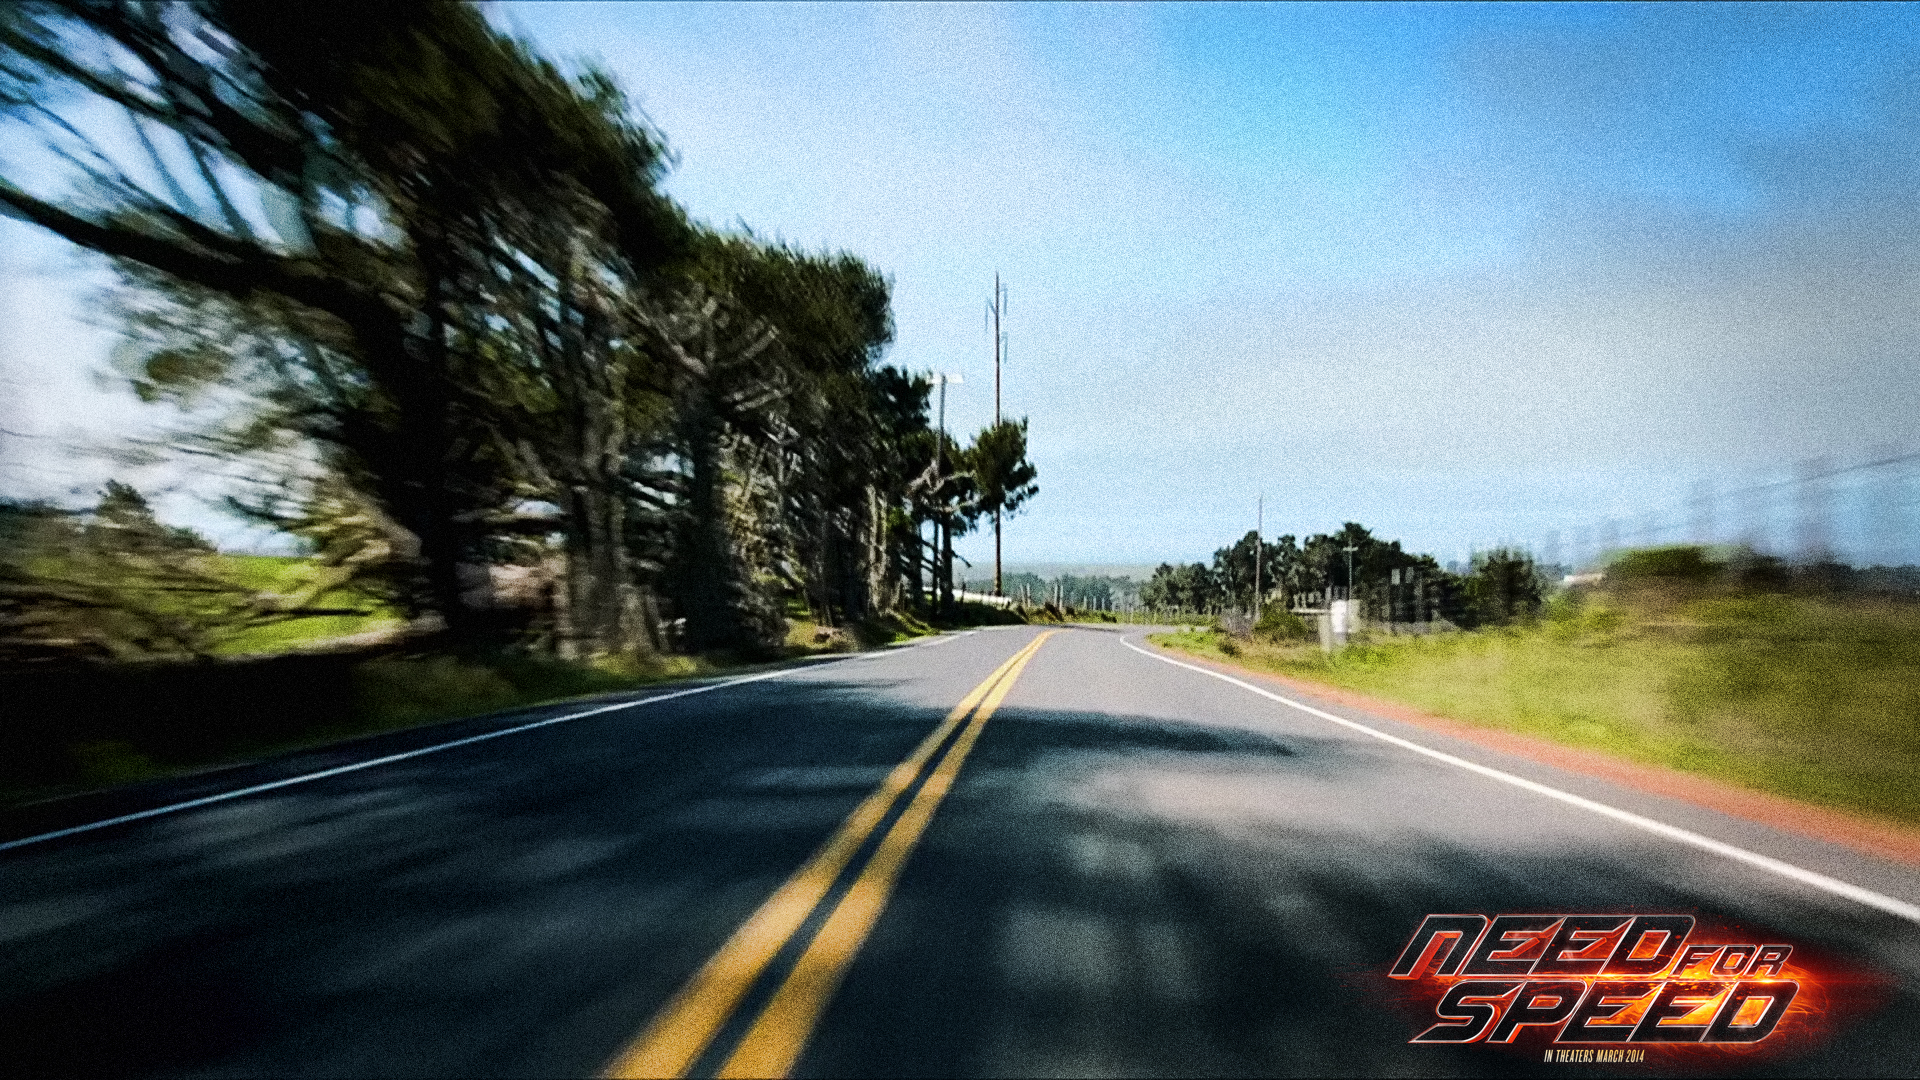 Free Download Need For Speed Movie Wallpapers 19201080 6